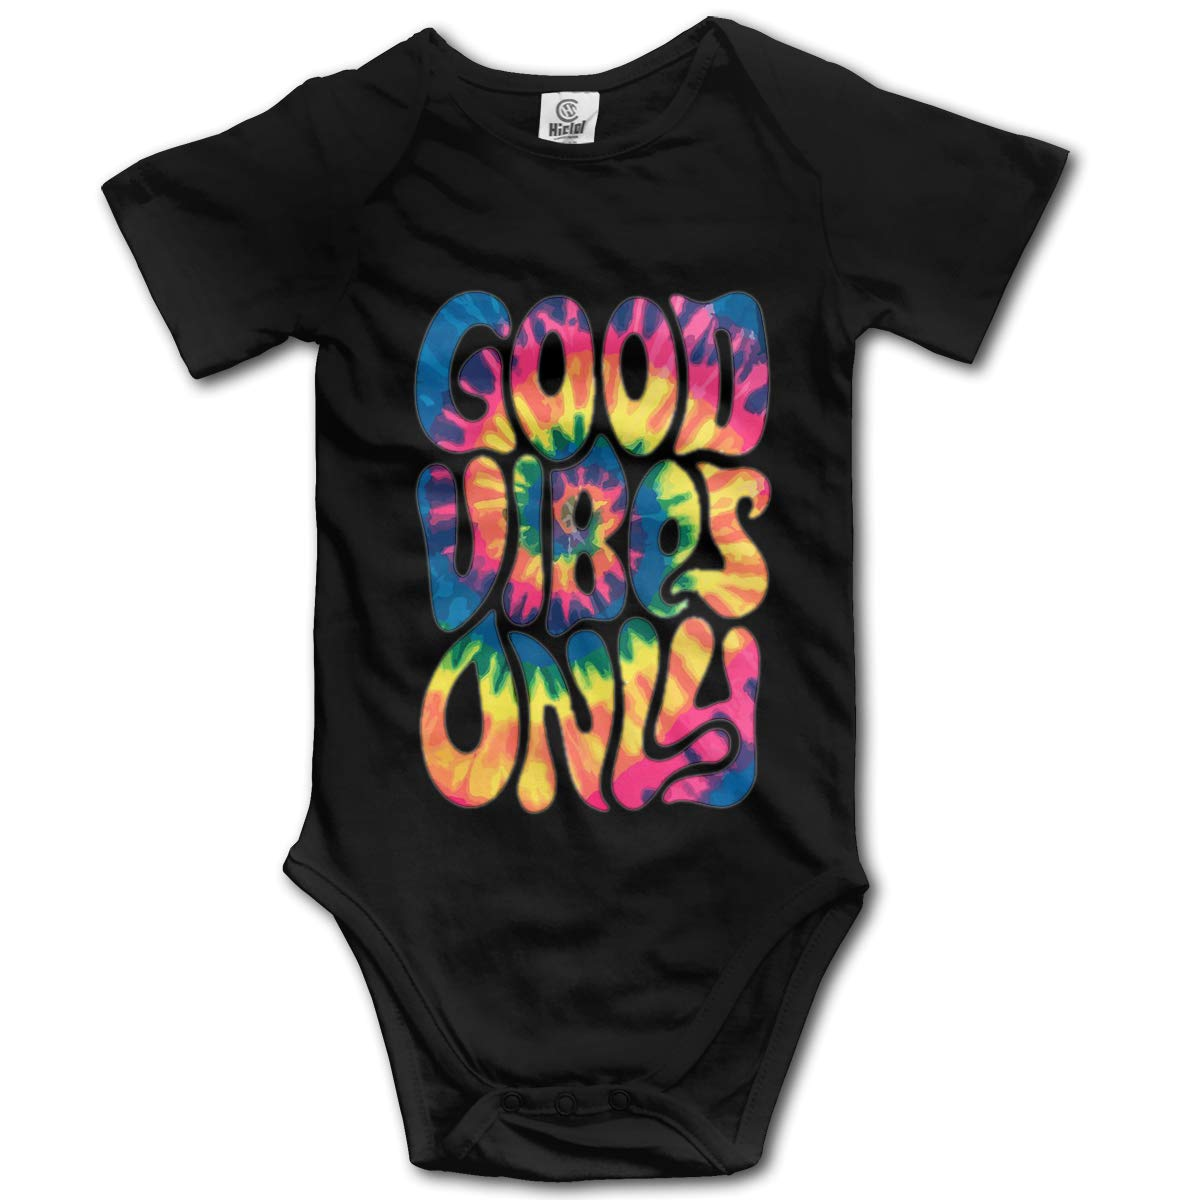 XHX Newborn Baby Good Vibes Only Short Sleeve Romper Onesie Bodysuit Jumpsuit